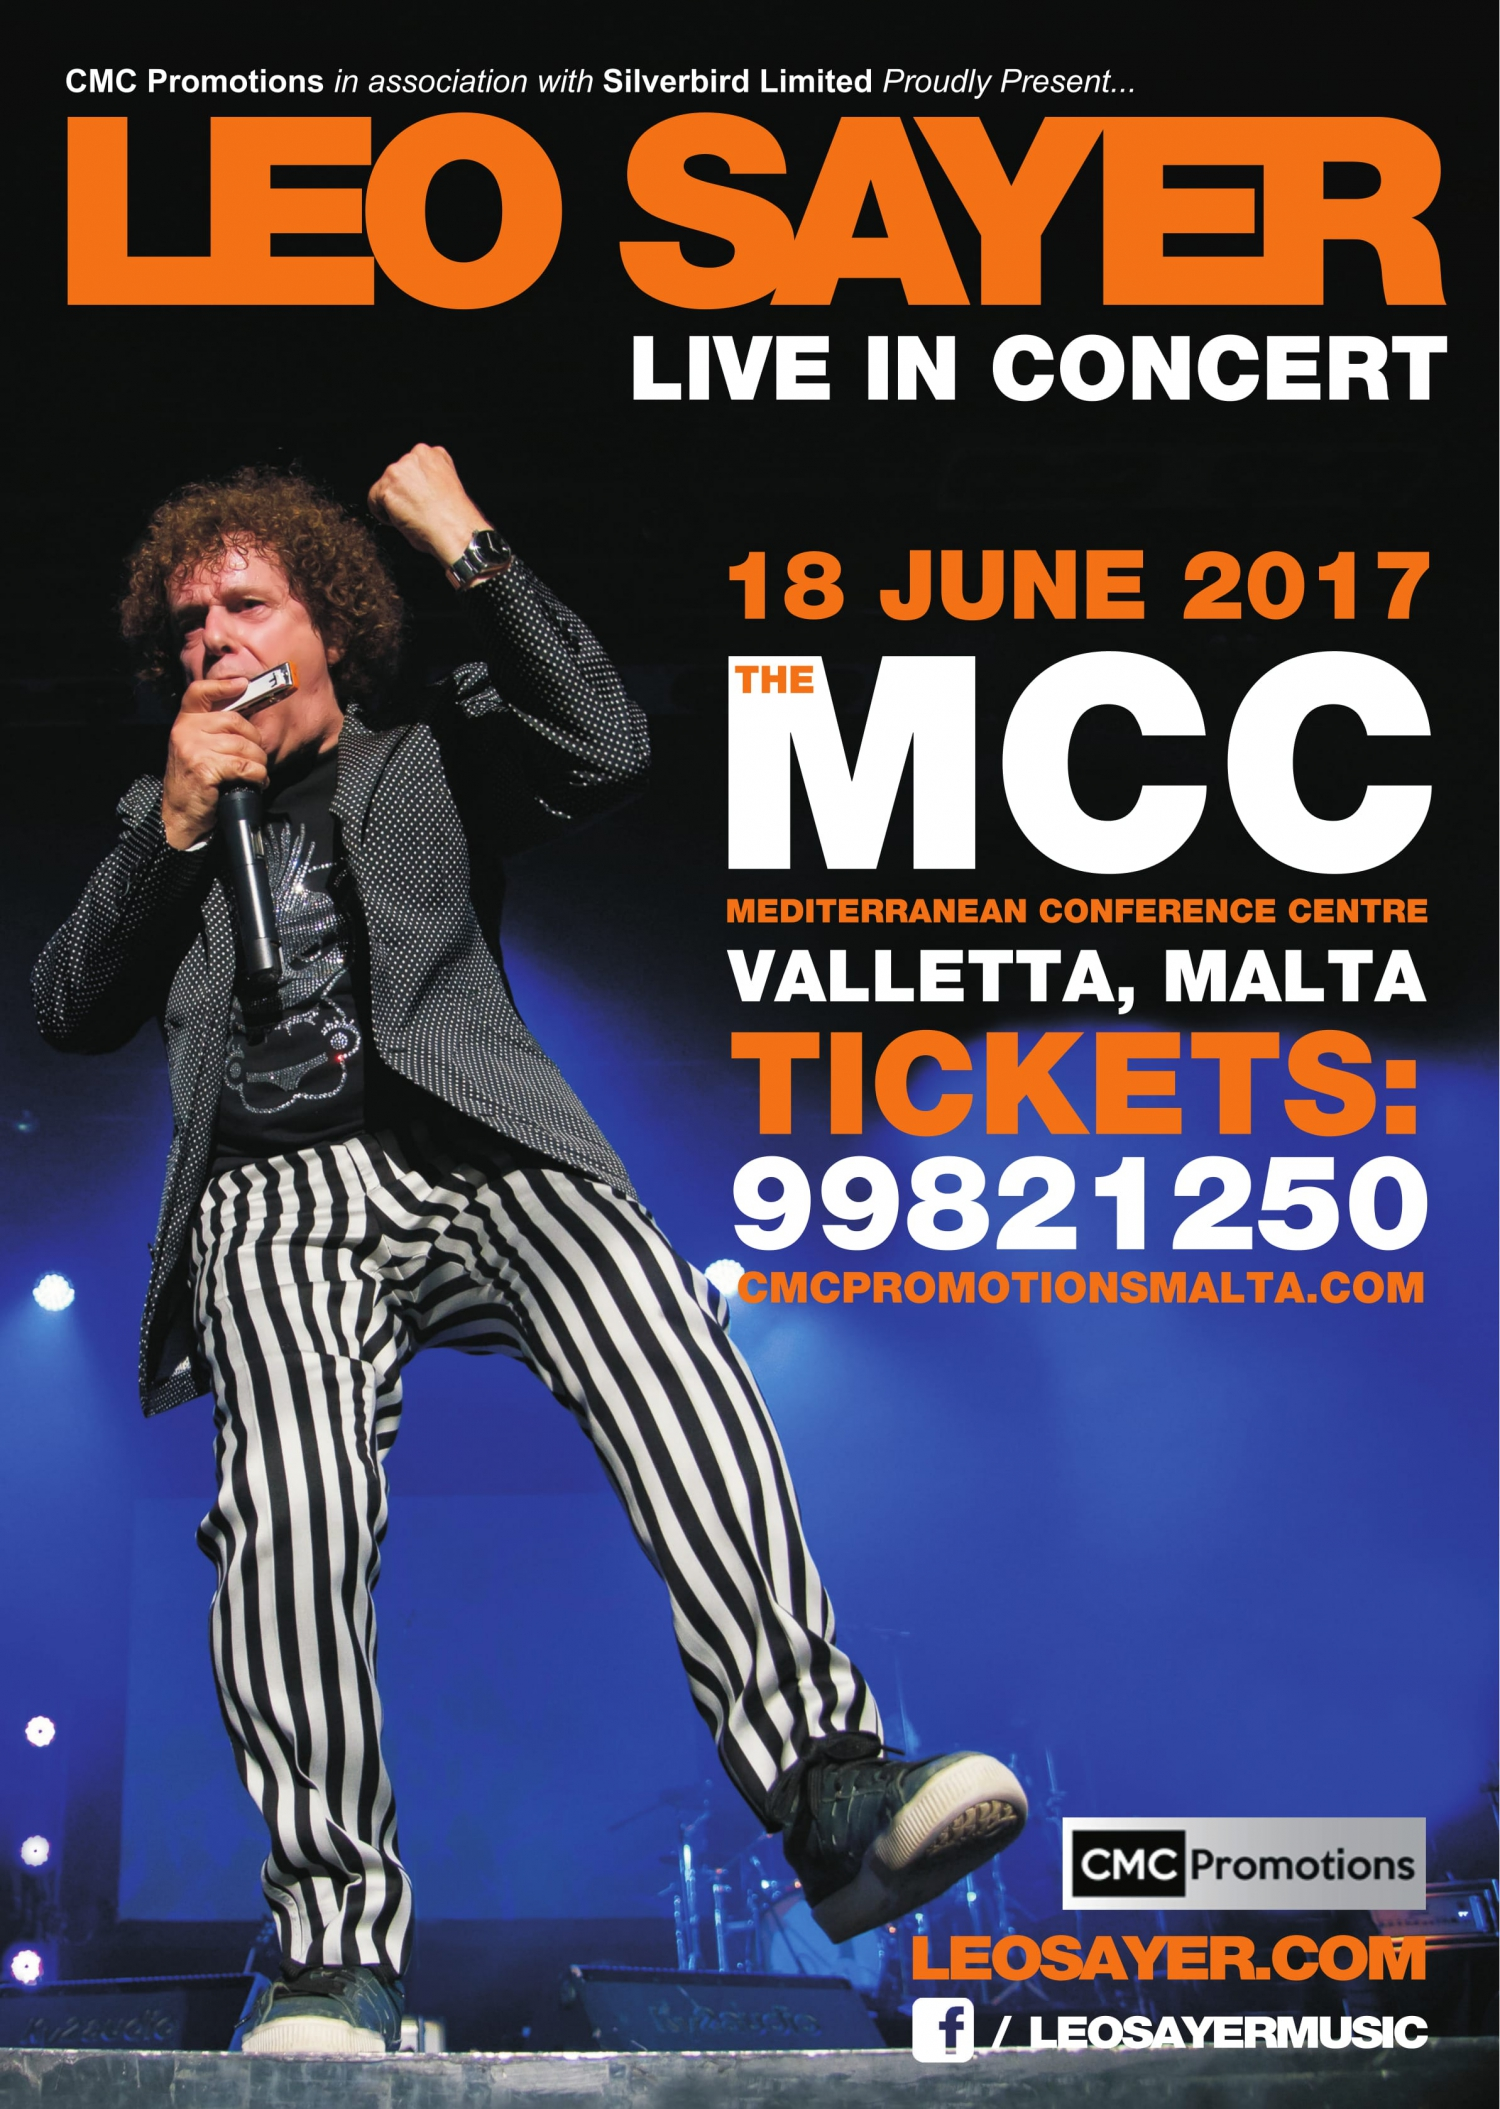 Leo Sayer - Live in Concert